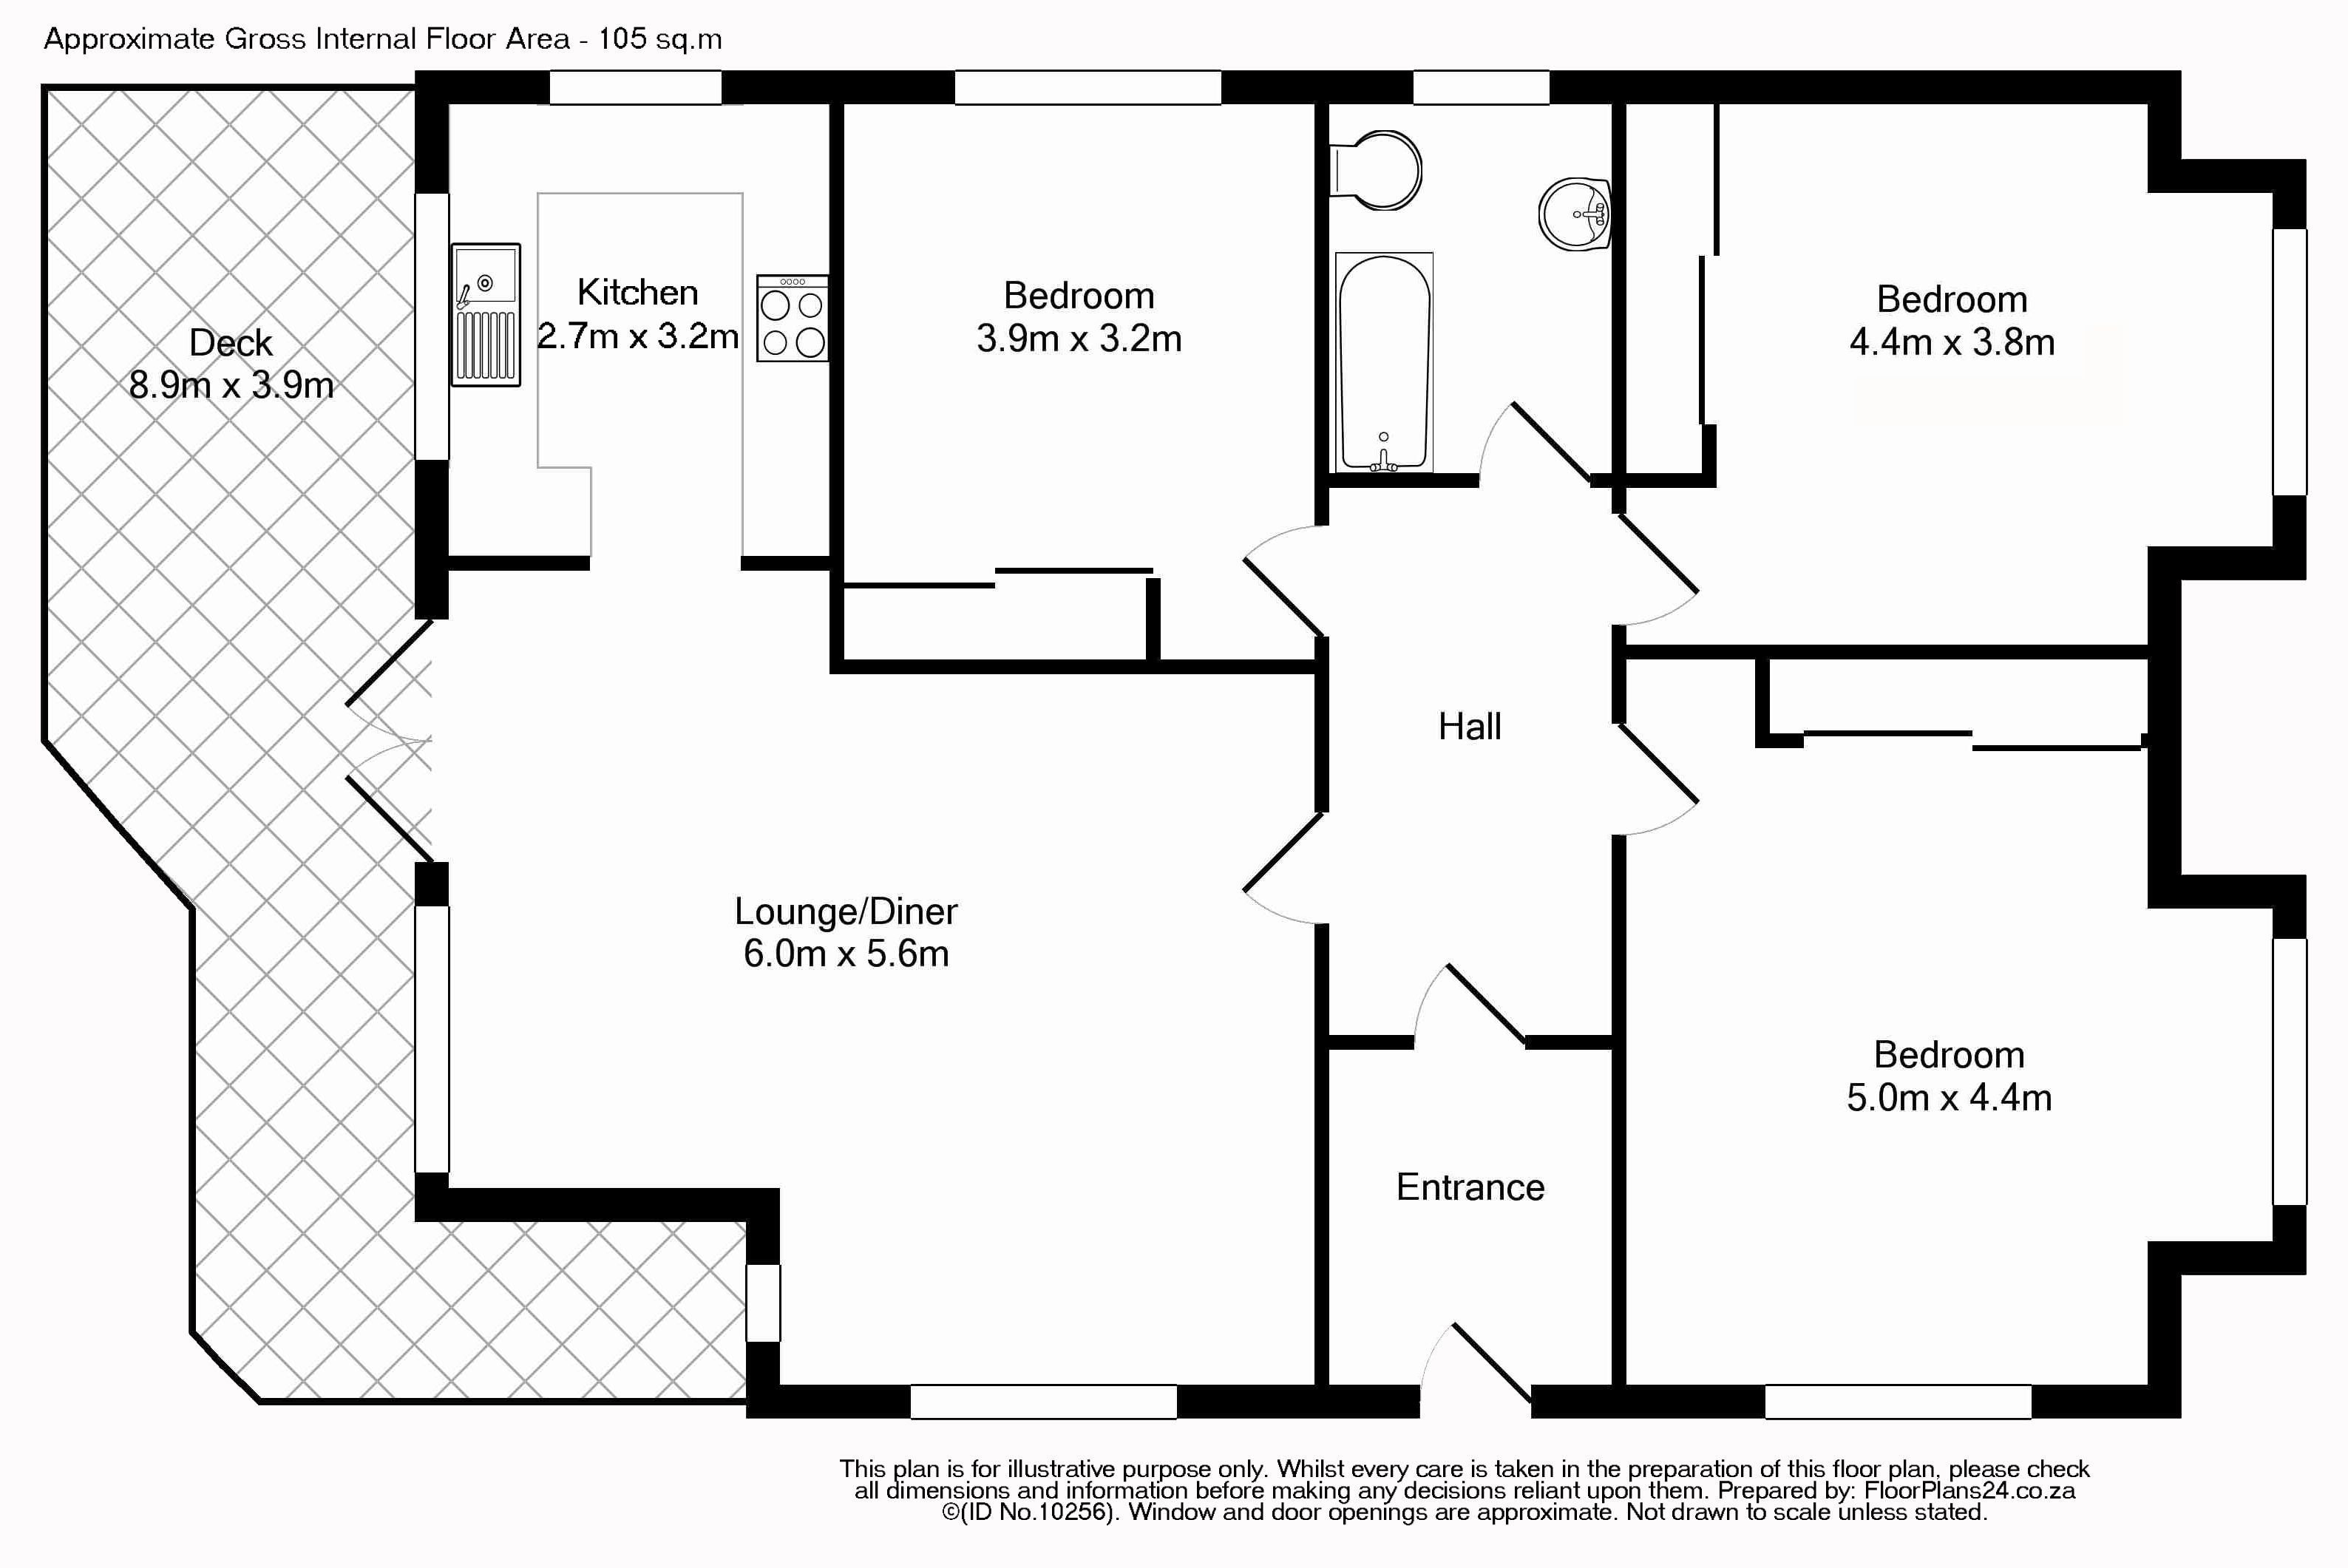 Classic Layout 3 Bedroom Apartment 105 Sq M Floorplans24 Delivers A Solution That Works For You Talk To Us Flat Plan Barn Apartment Layout